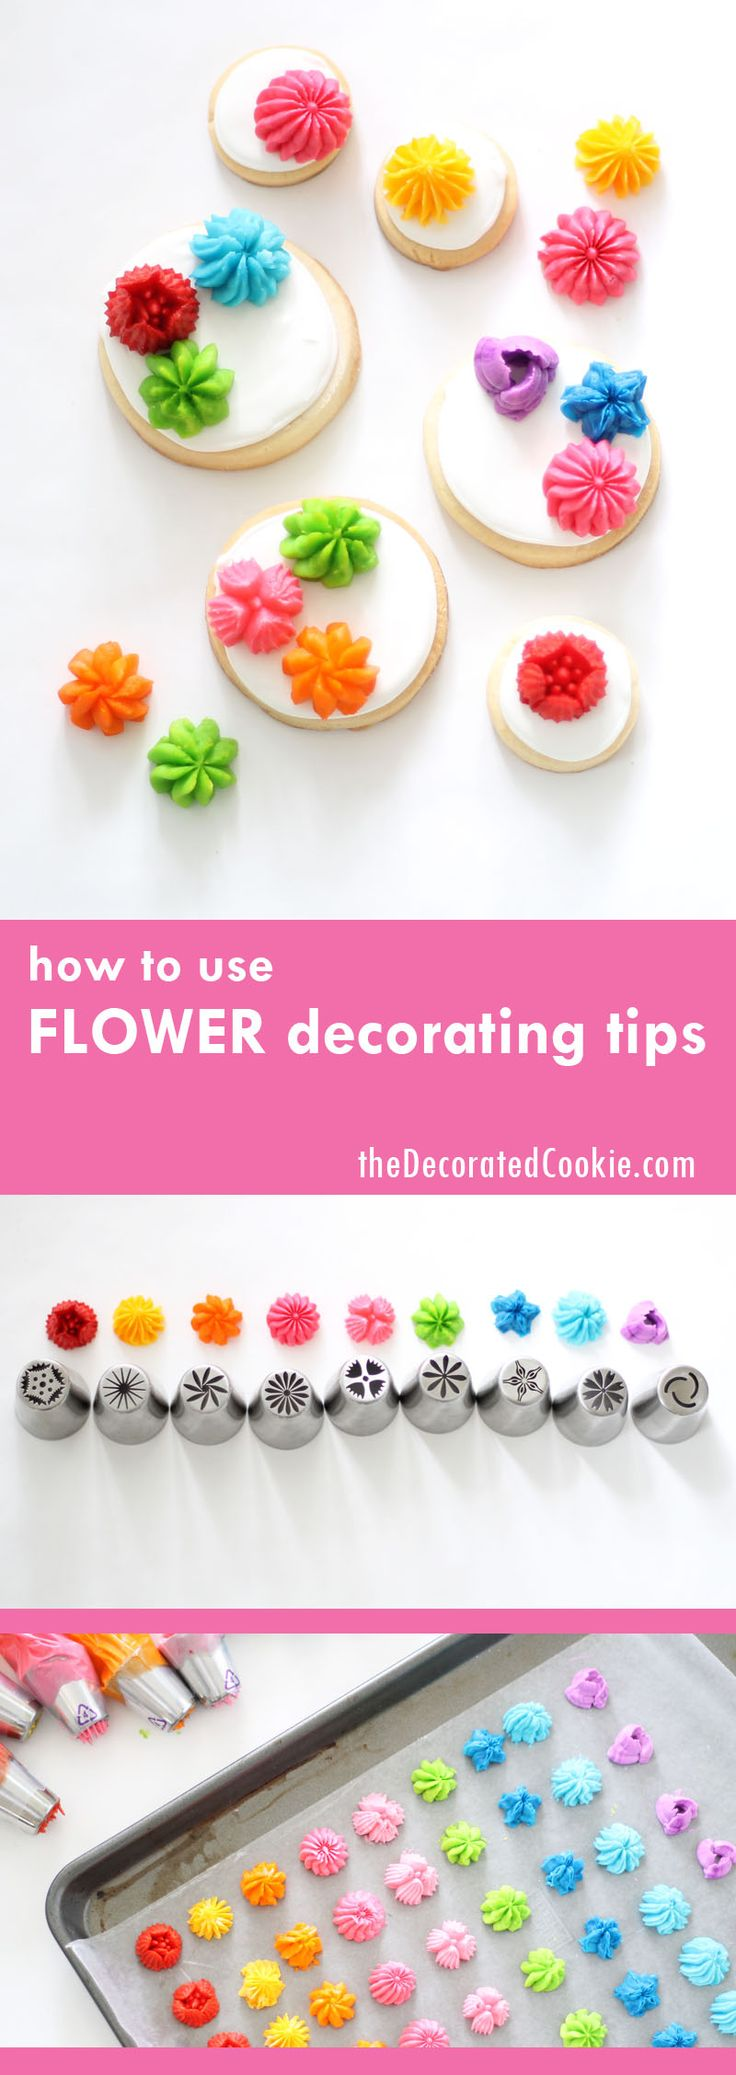 how to use flower decorating tips for cakes, cookies or cupcakes by @decoratedcookie